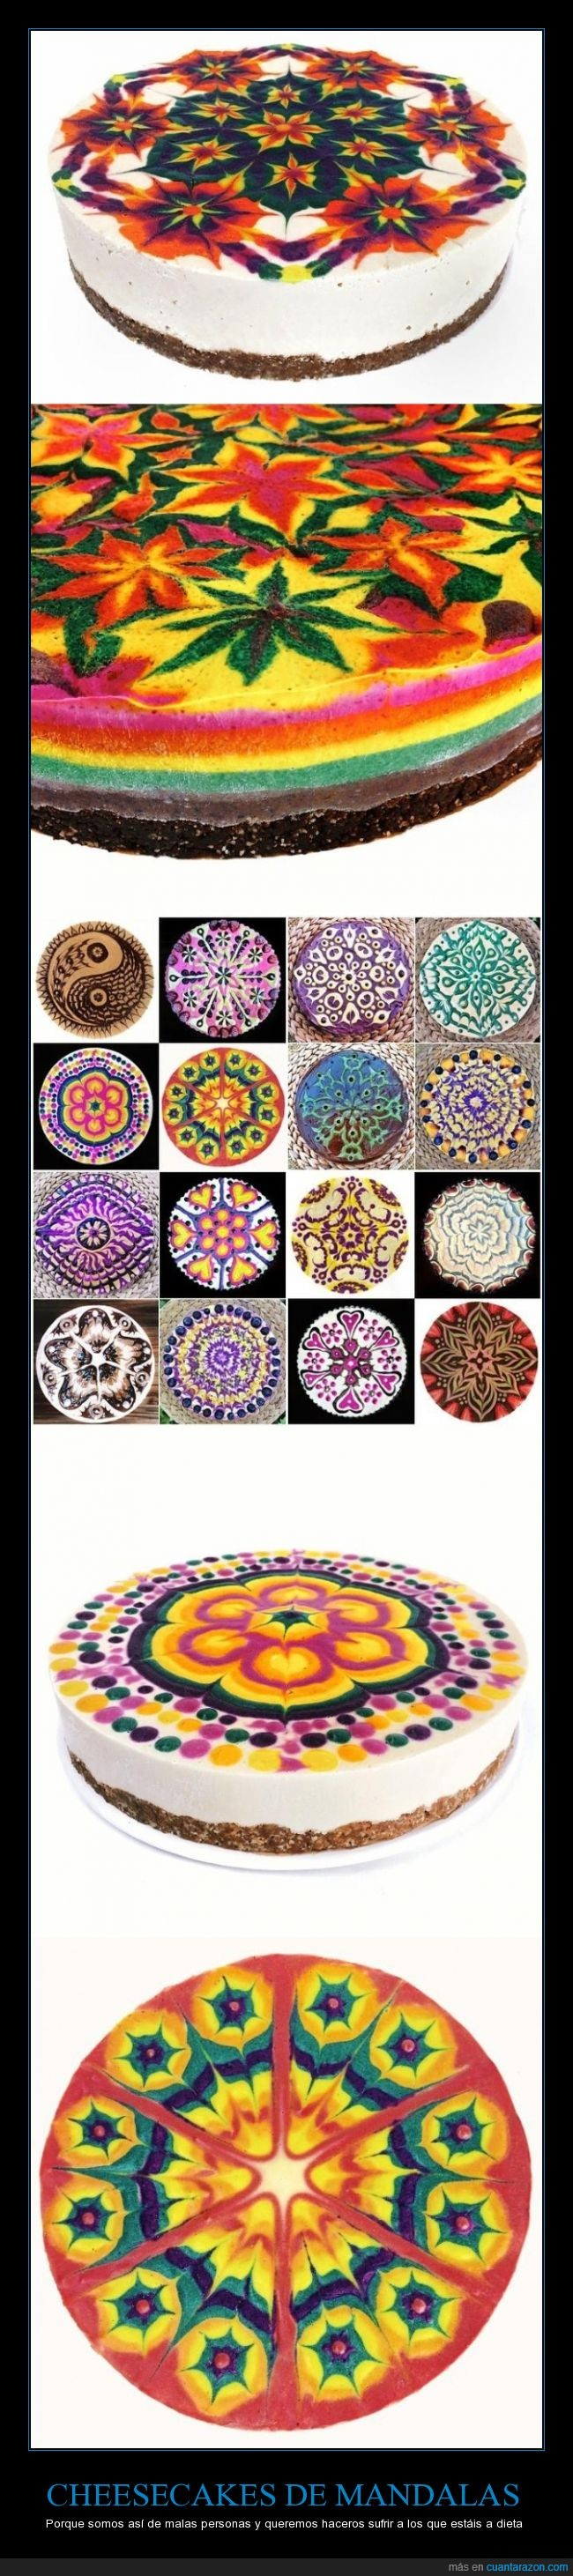 cheesecakes mandalas